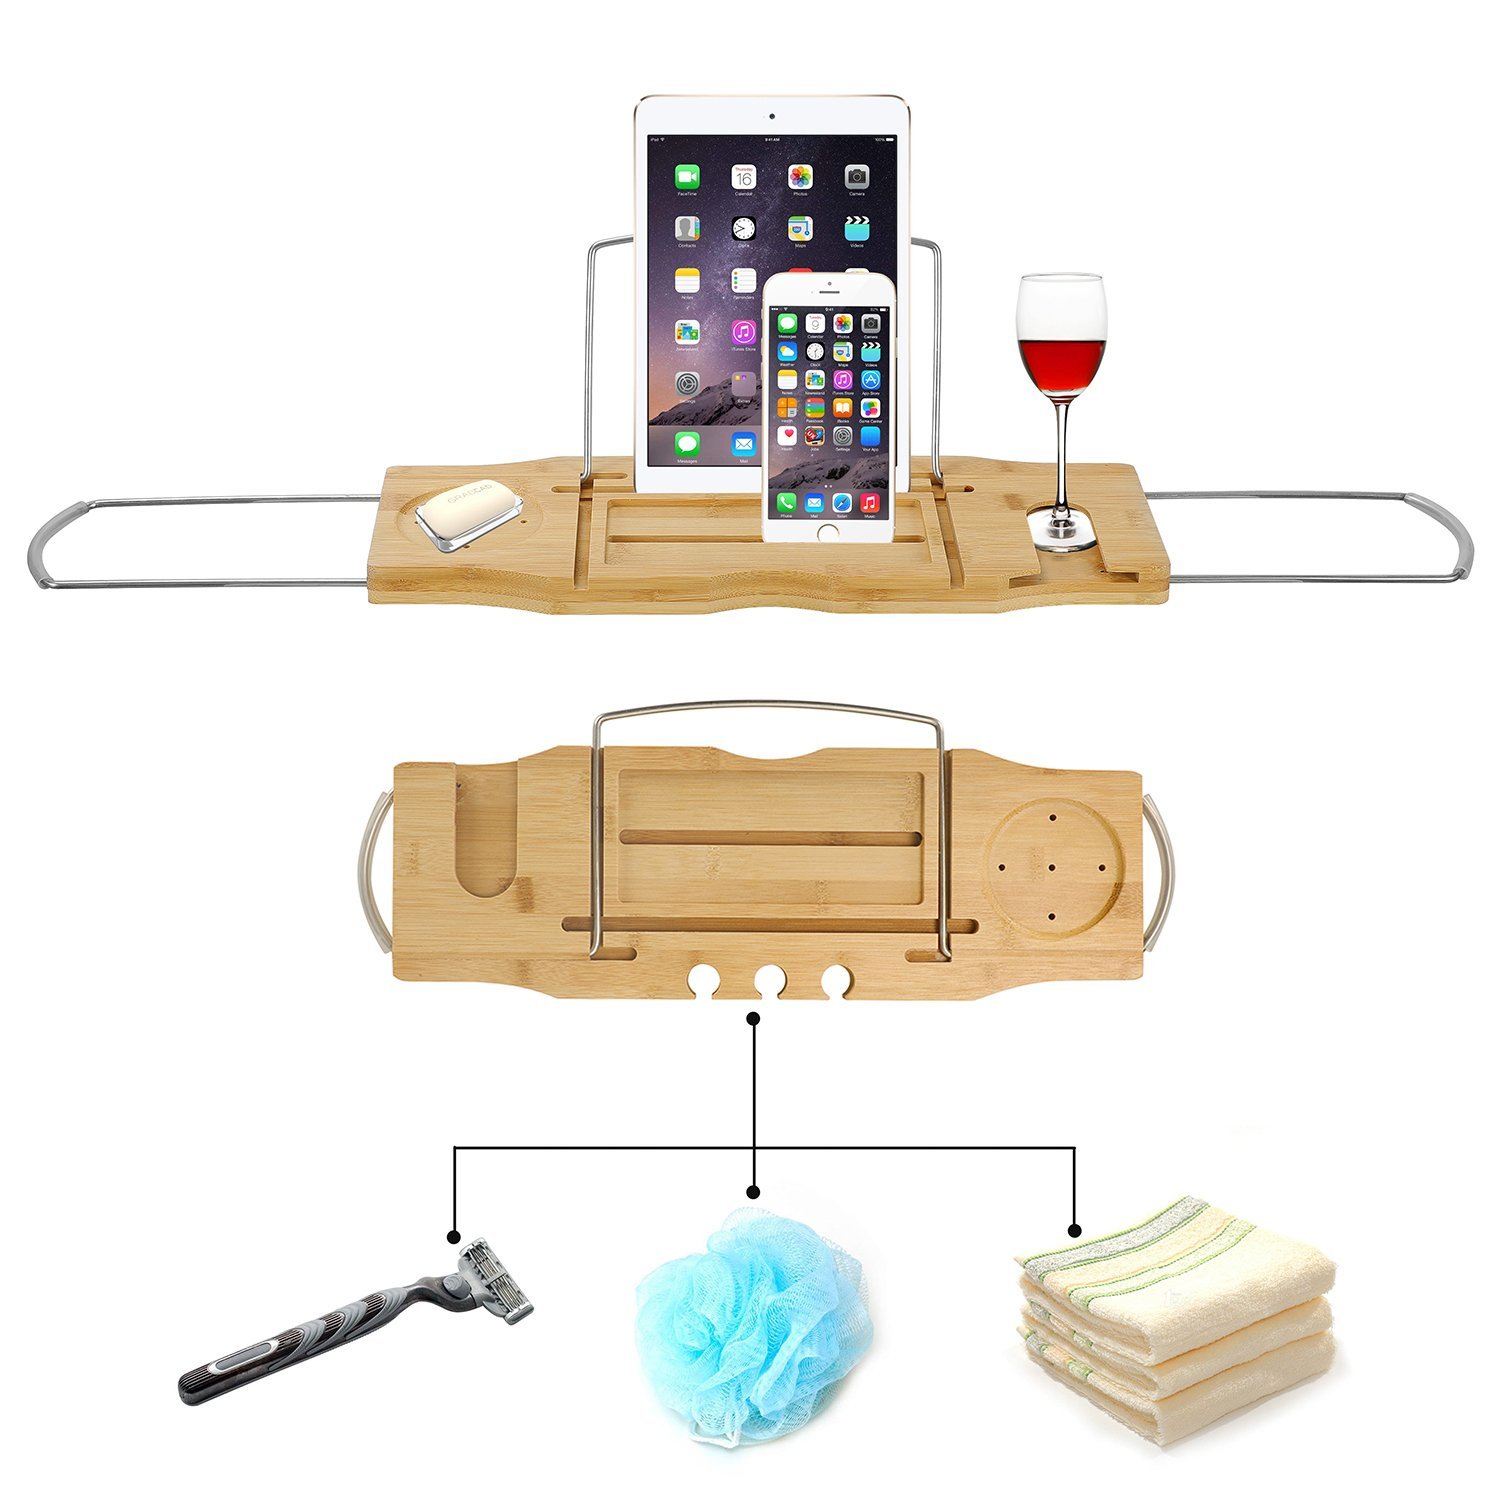 Utoplike Extendable Bamboo Bathtub Caddy Tray Bathtub Rack with Stainless Steel Arms Adjustable Book Holder and Slots for Wine Ipad Phone